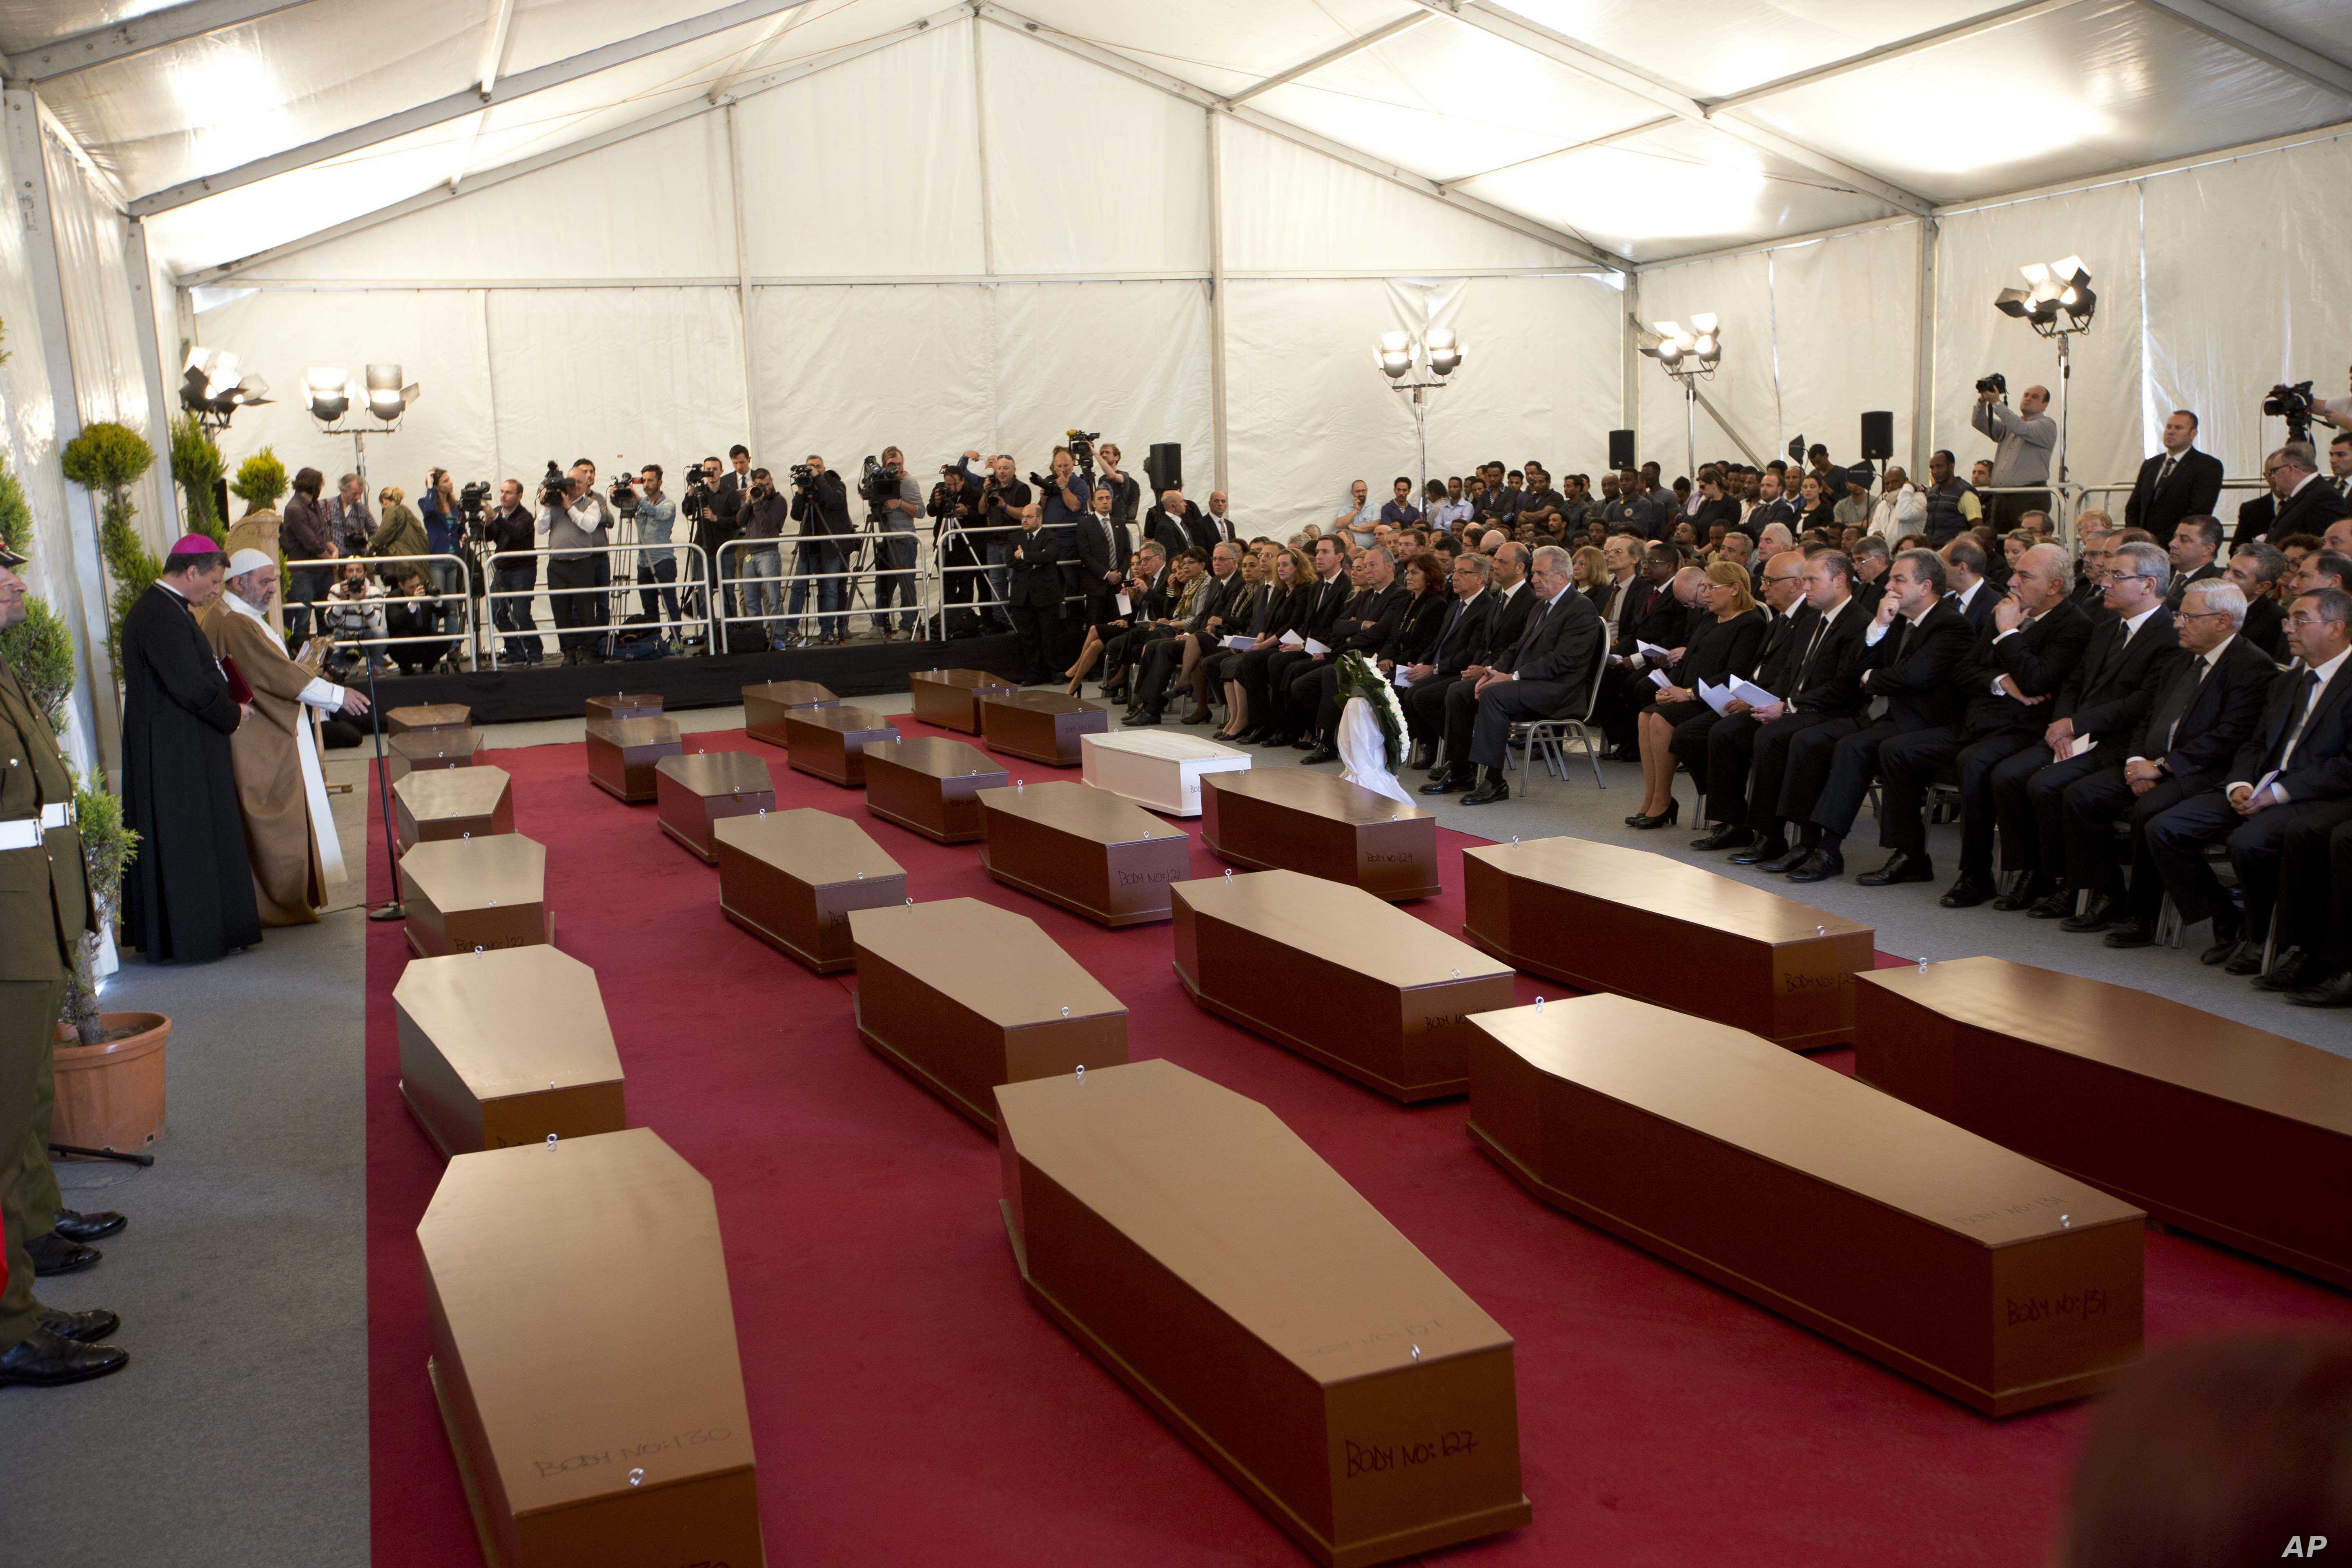 A view of the tent where a funeral service for 24 migrants drowned while trying to reach the Southern coasts of Italy took place, in Msida, in the outskirts of Valletta,  Malta, Thursday, April 23, 2015. The migrants died as a smuggler's boat crammed...